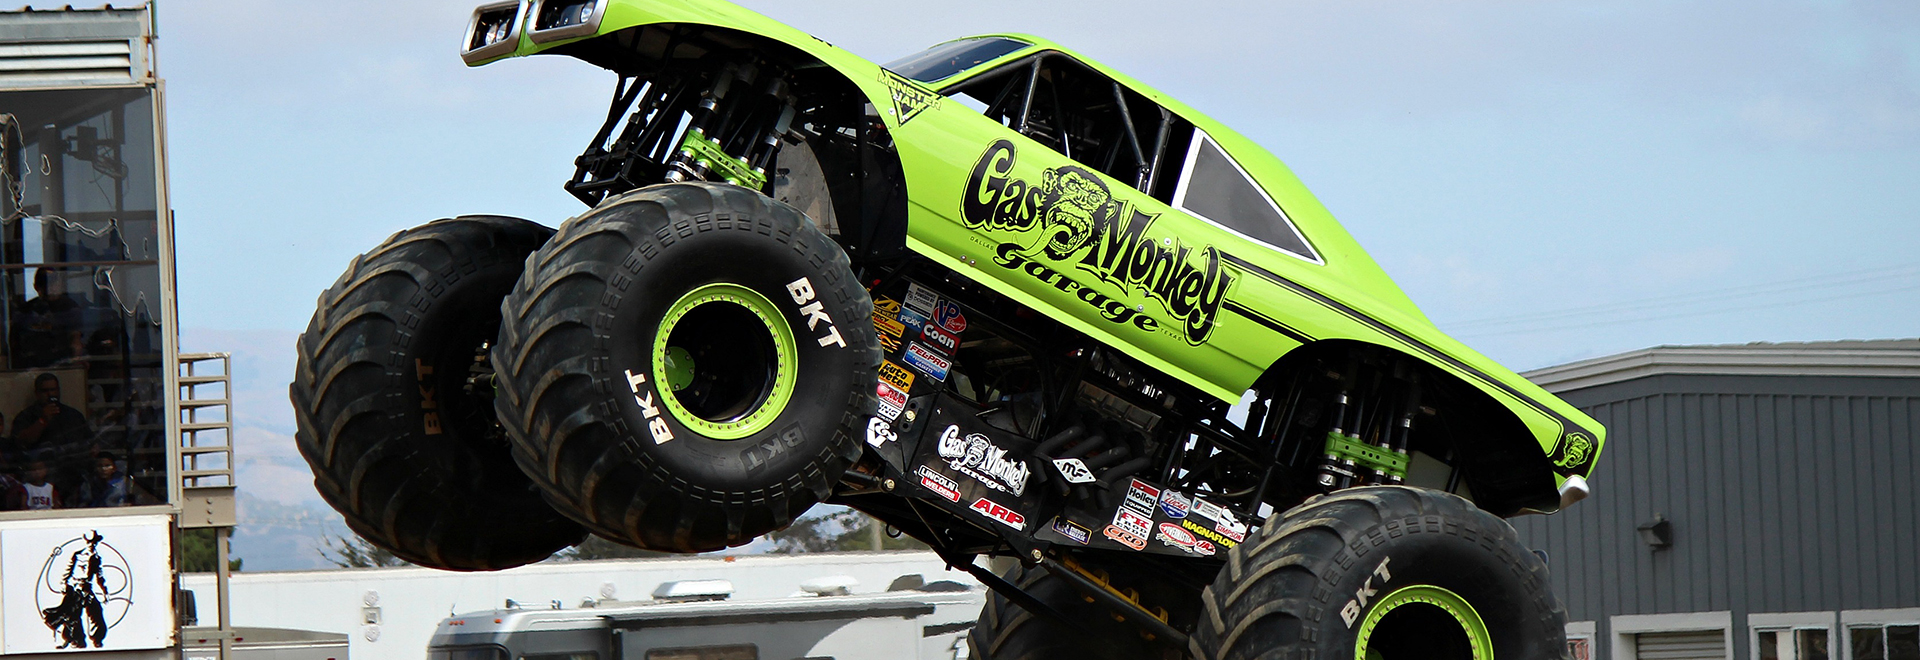 Gas Monkey Garage Team Wins